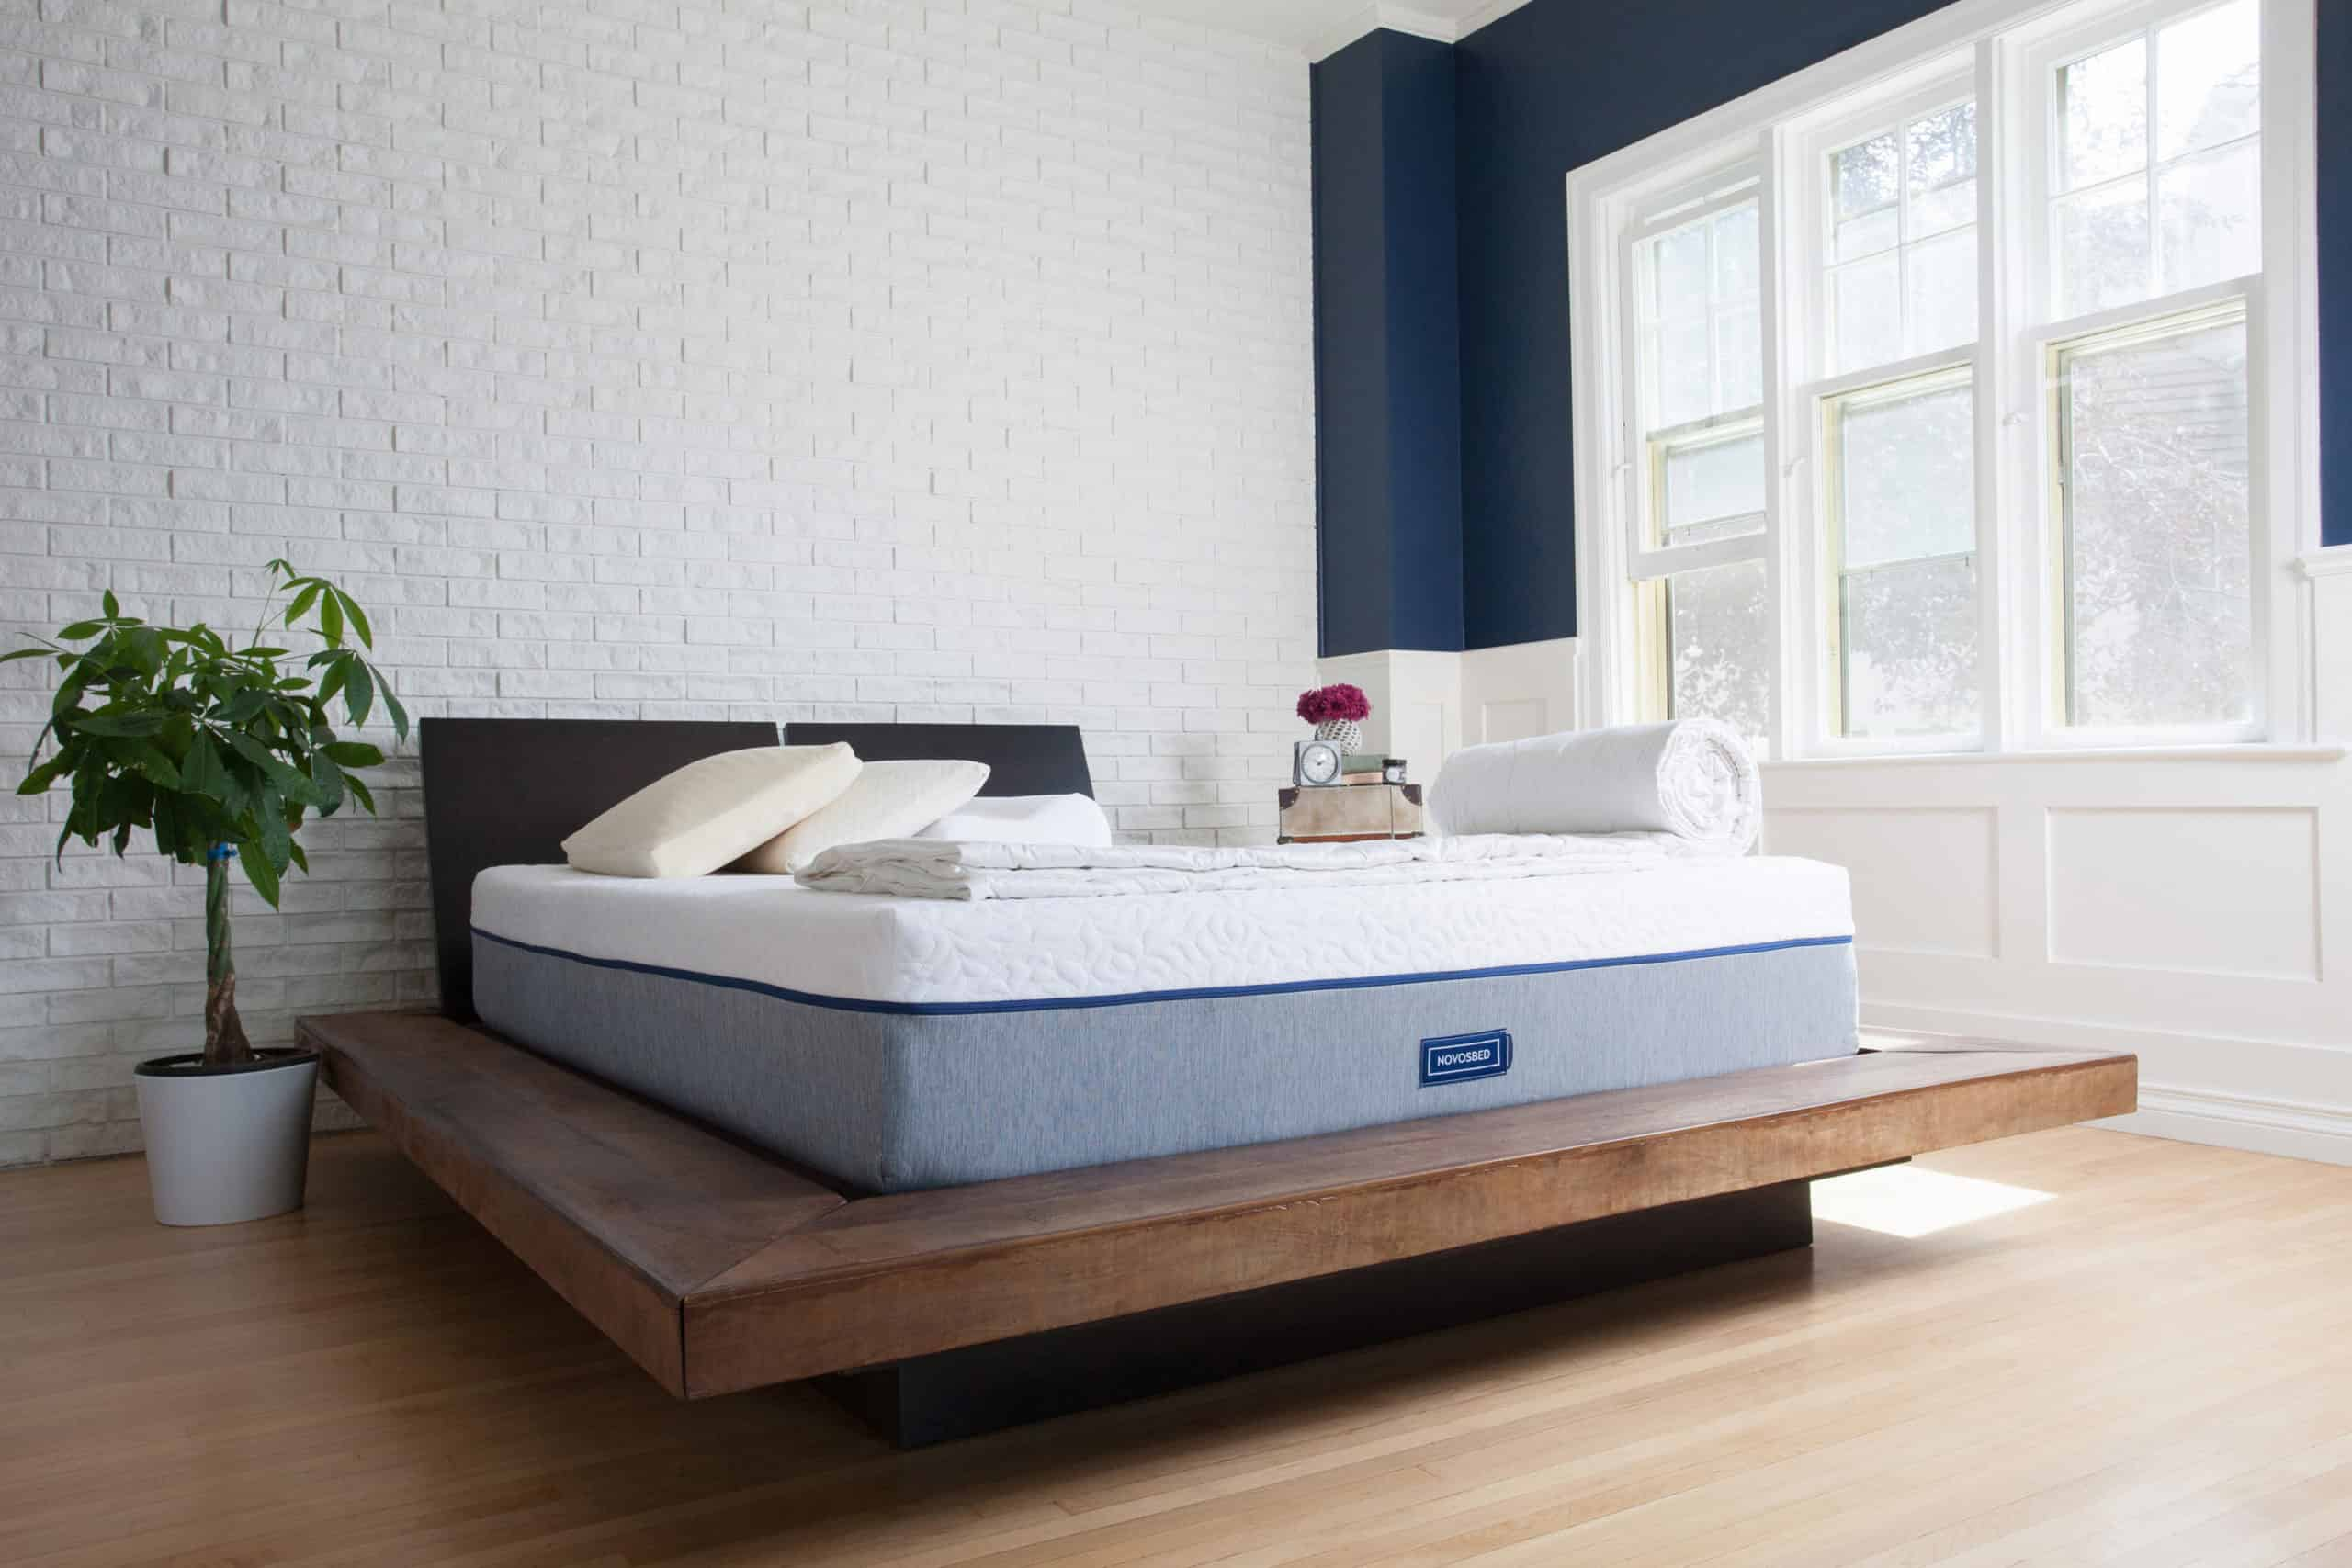 A Few Notable Aspects To Consider Before Buying A Canadian Made Mattress